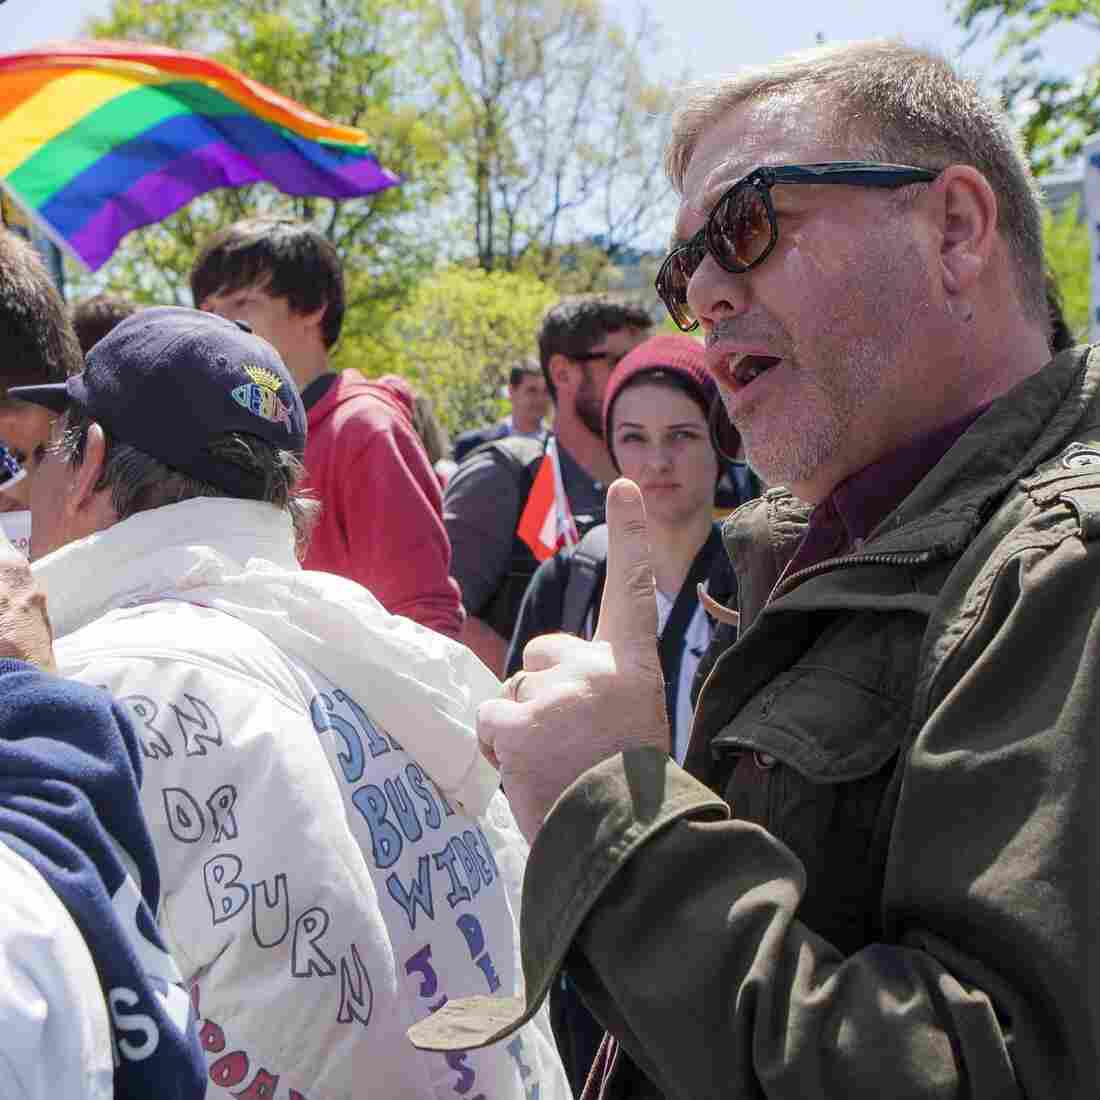 The Supreme Court will rule on same-sex marriage next month; here, Reverend Scott Hopkins, right, of United Methodist Church in Vienna, Va., voices his support of gay marriage as Tracy Grisham, of Amarillo, Texas, voices her disapproval.